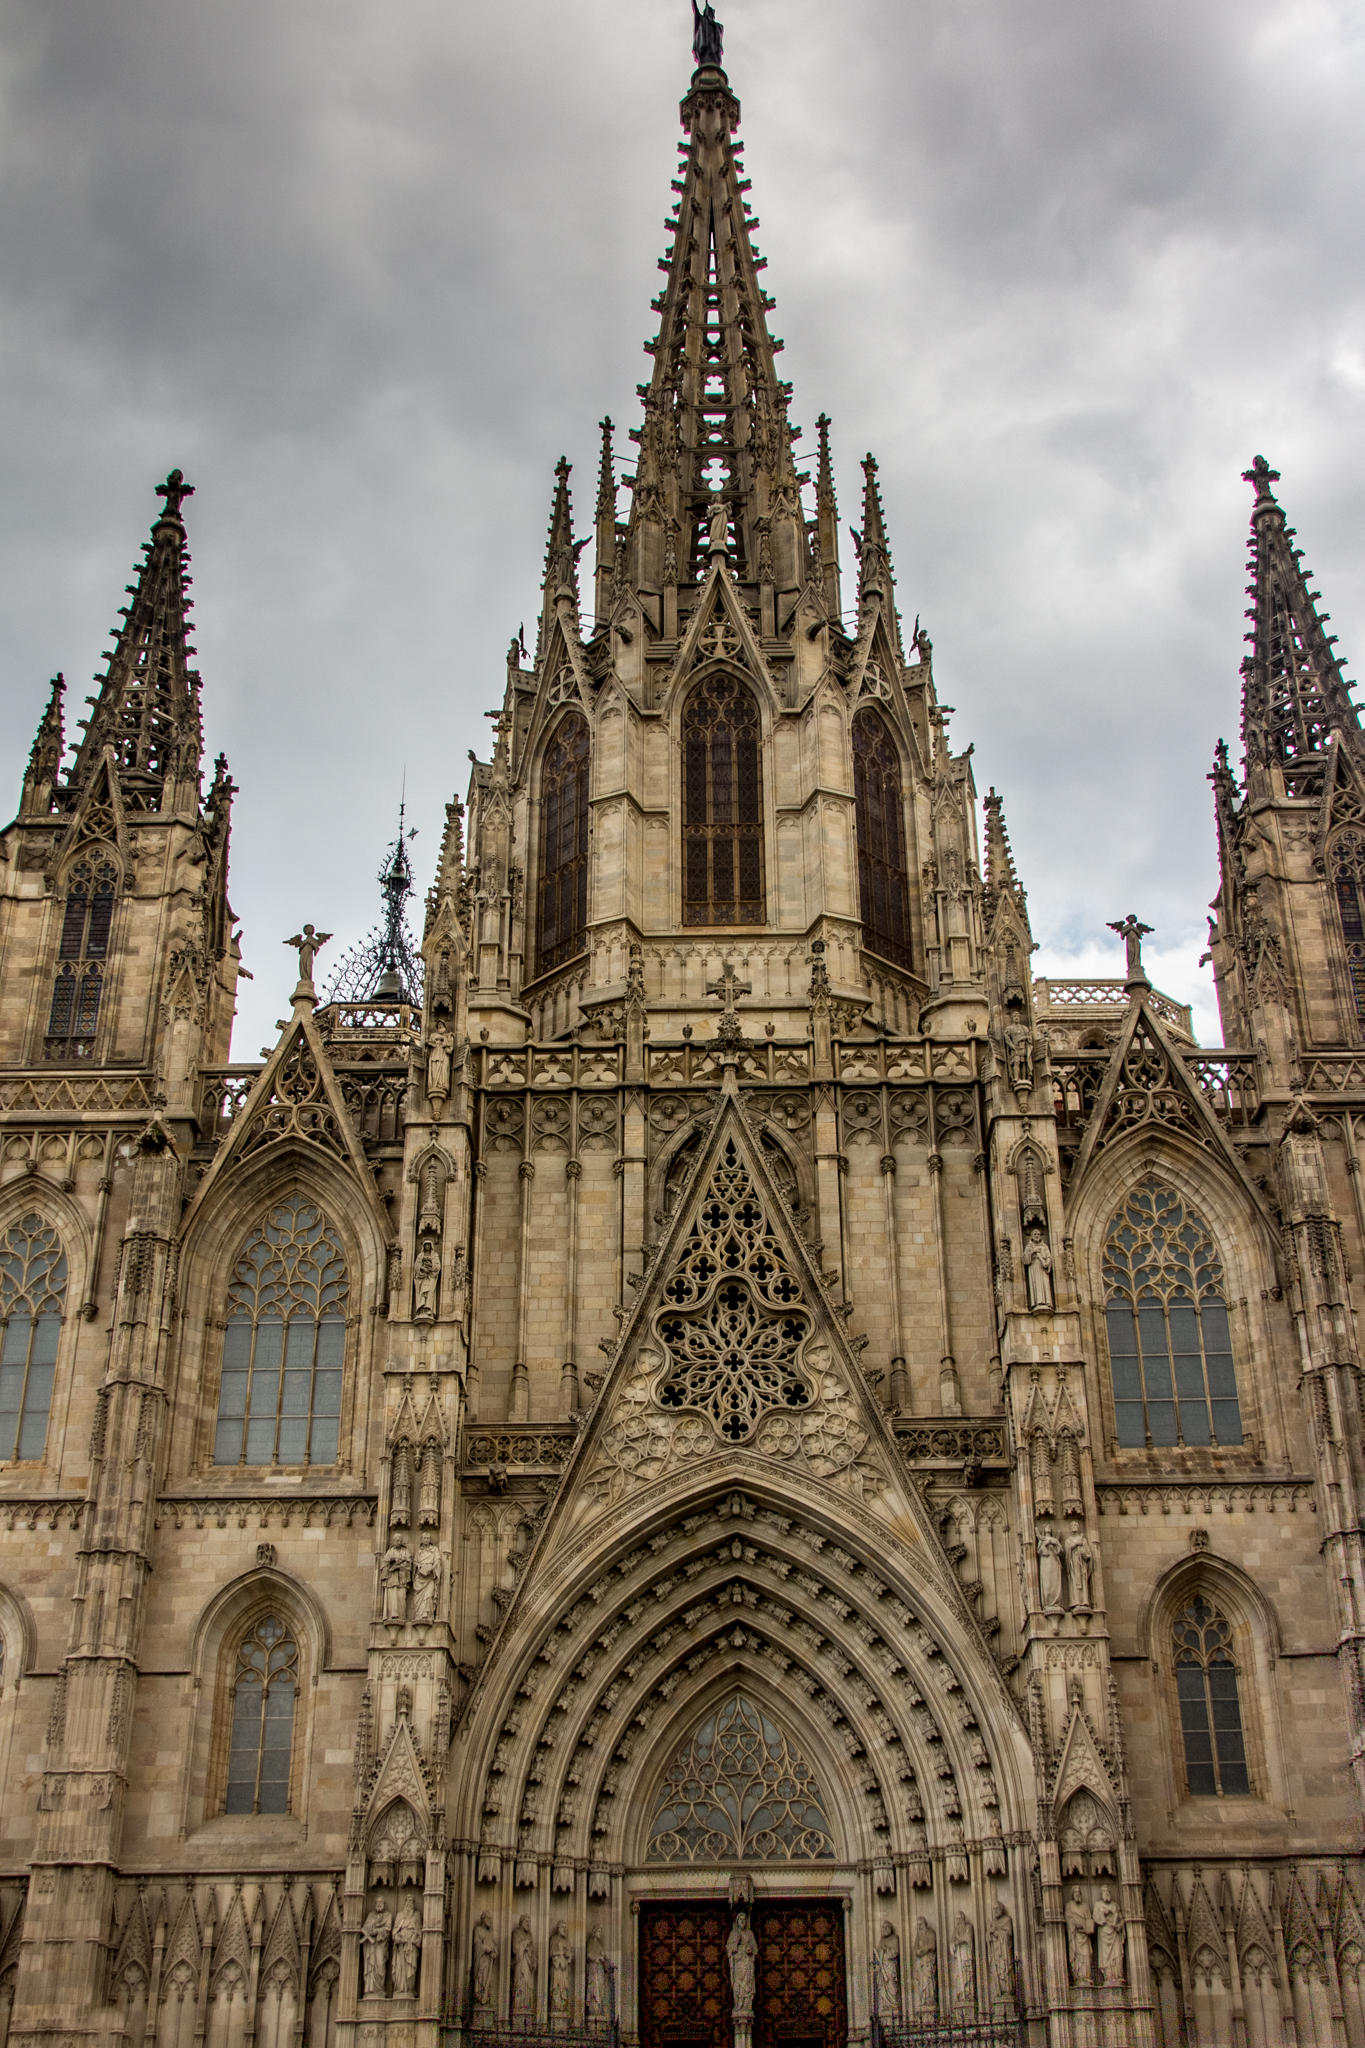 Some of my favorite architecture has been found in Barcelona and various cities in Italy. Pictured above is the Cathedral of Barcelona.